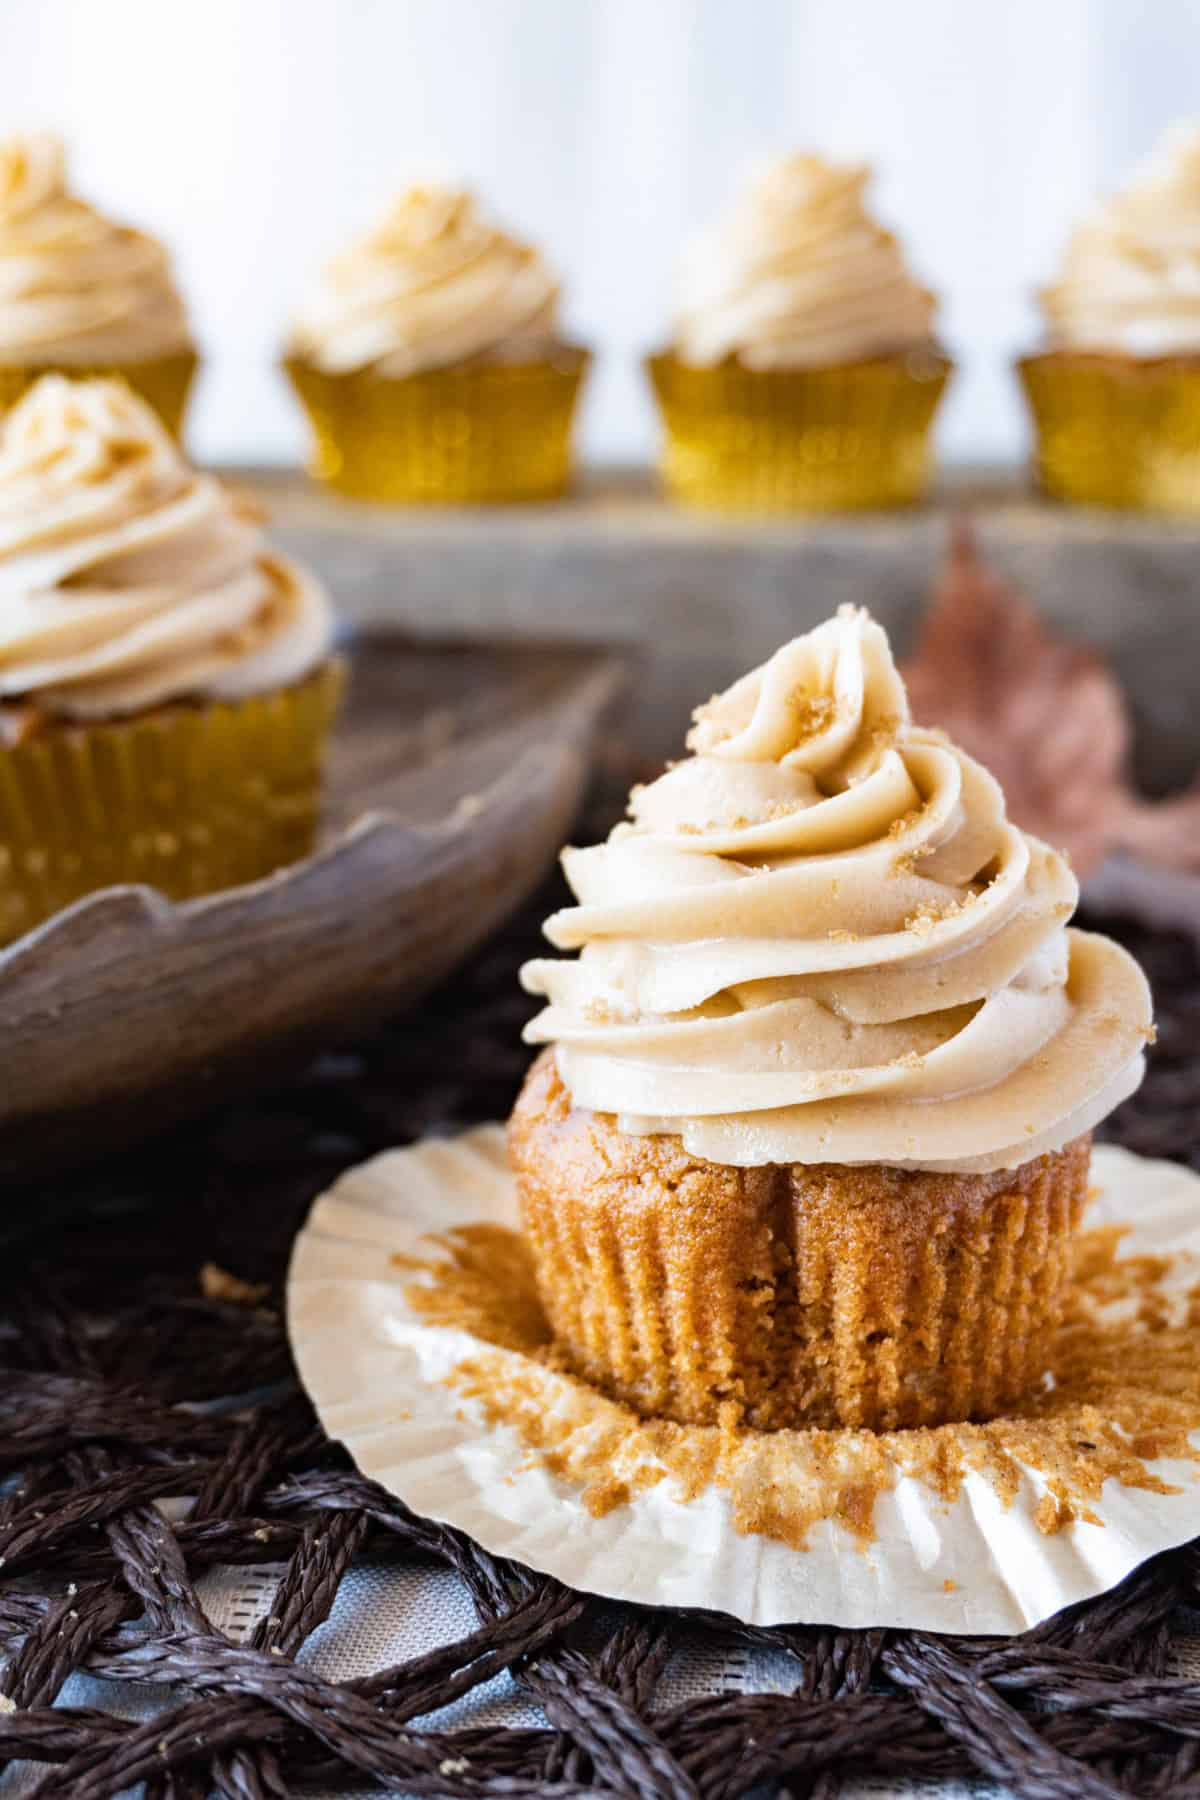 sweet potato cupcake with frosting and cupcakes in background